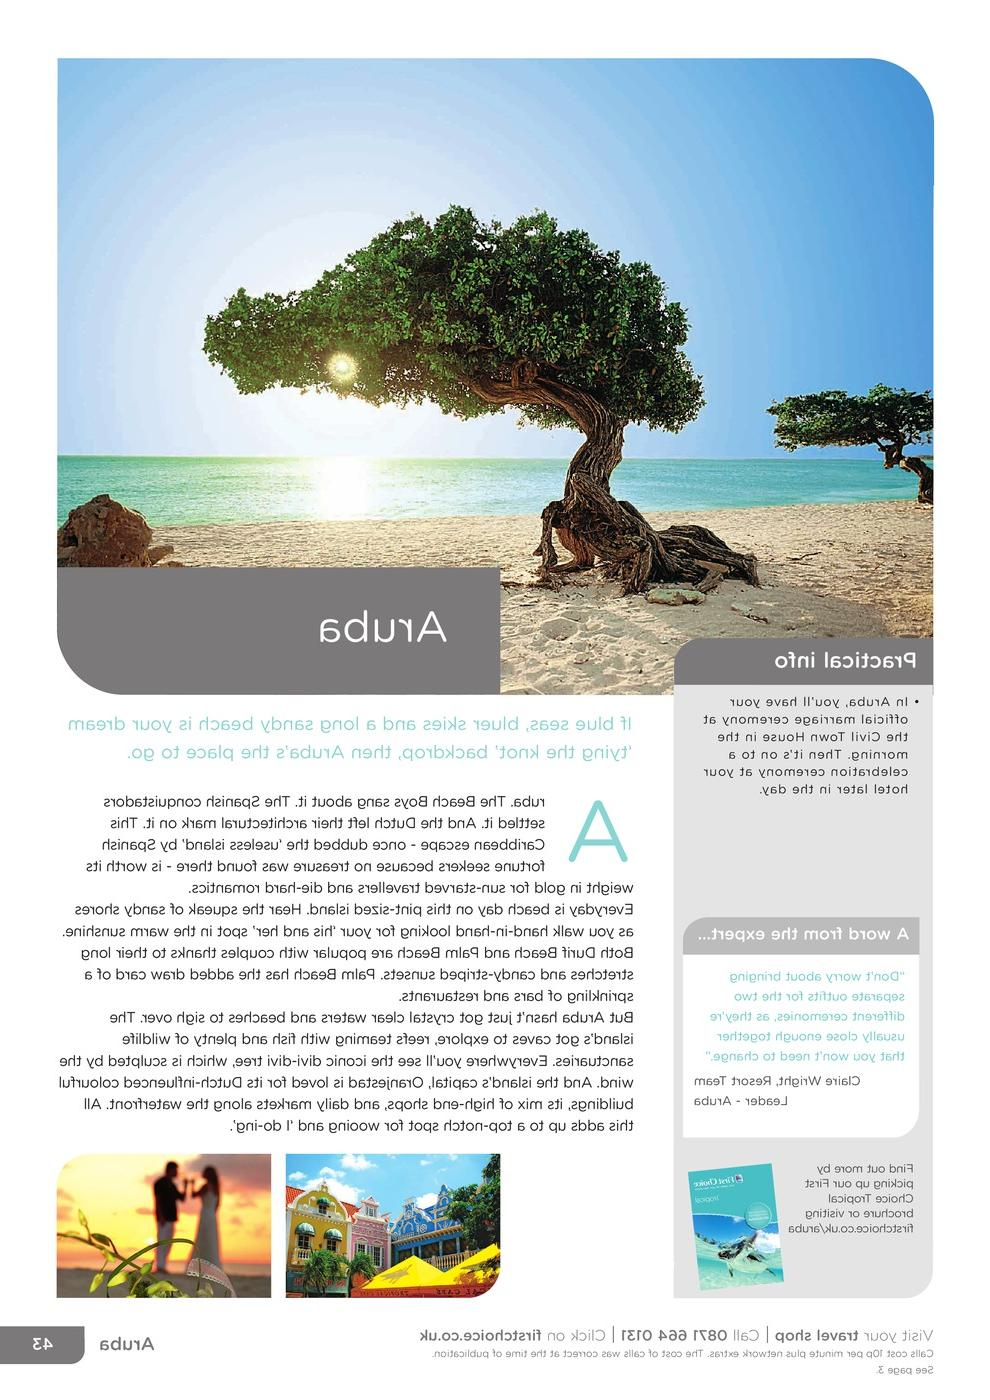 Aruba - Mexico & Caribbean - First Choice Weddings and Renewal of Vows